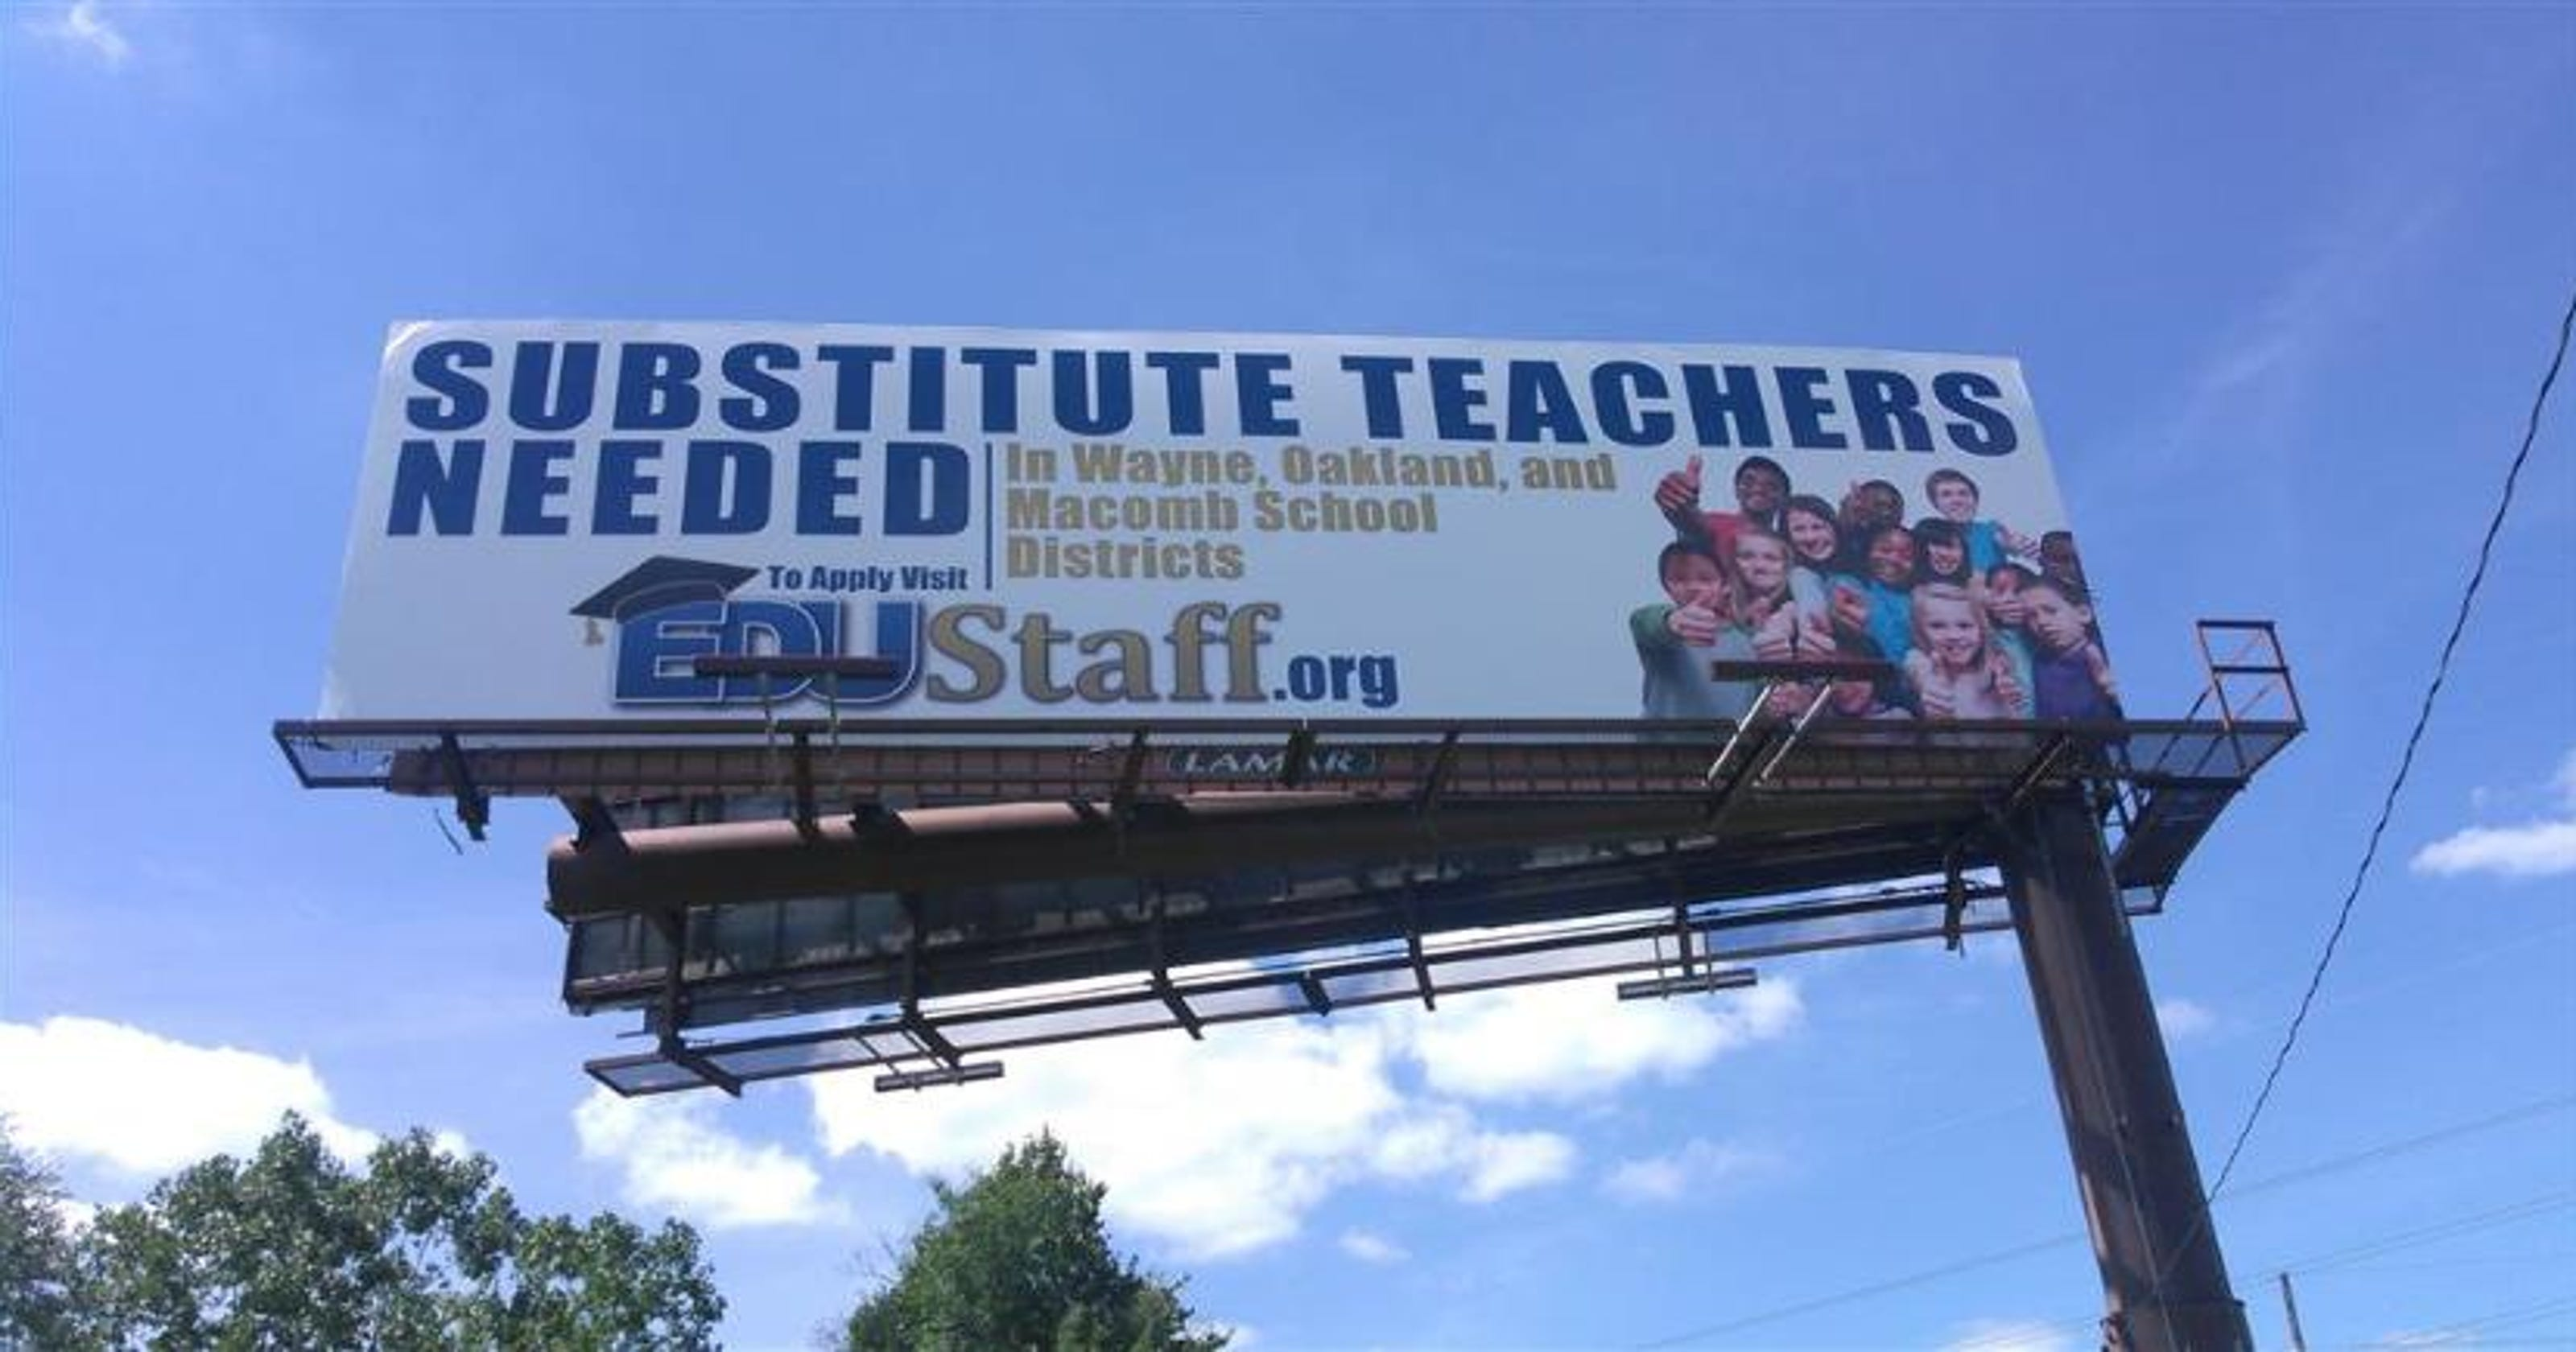 Wanted Substitute Teachers For Michigan Classrooms